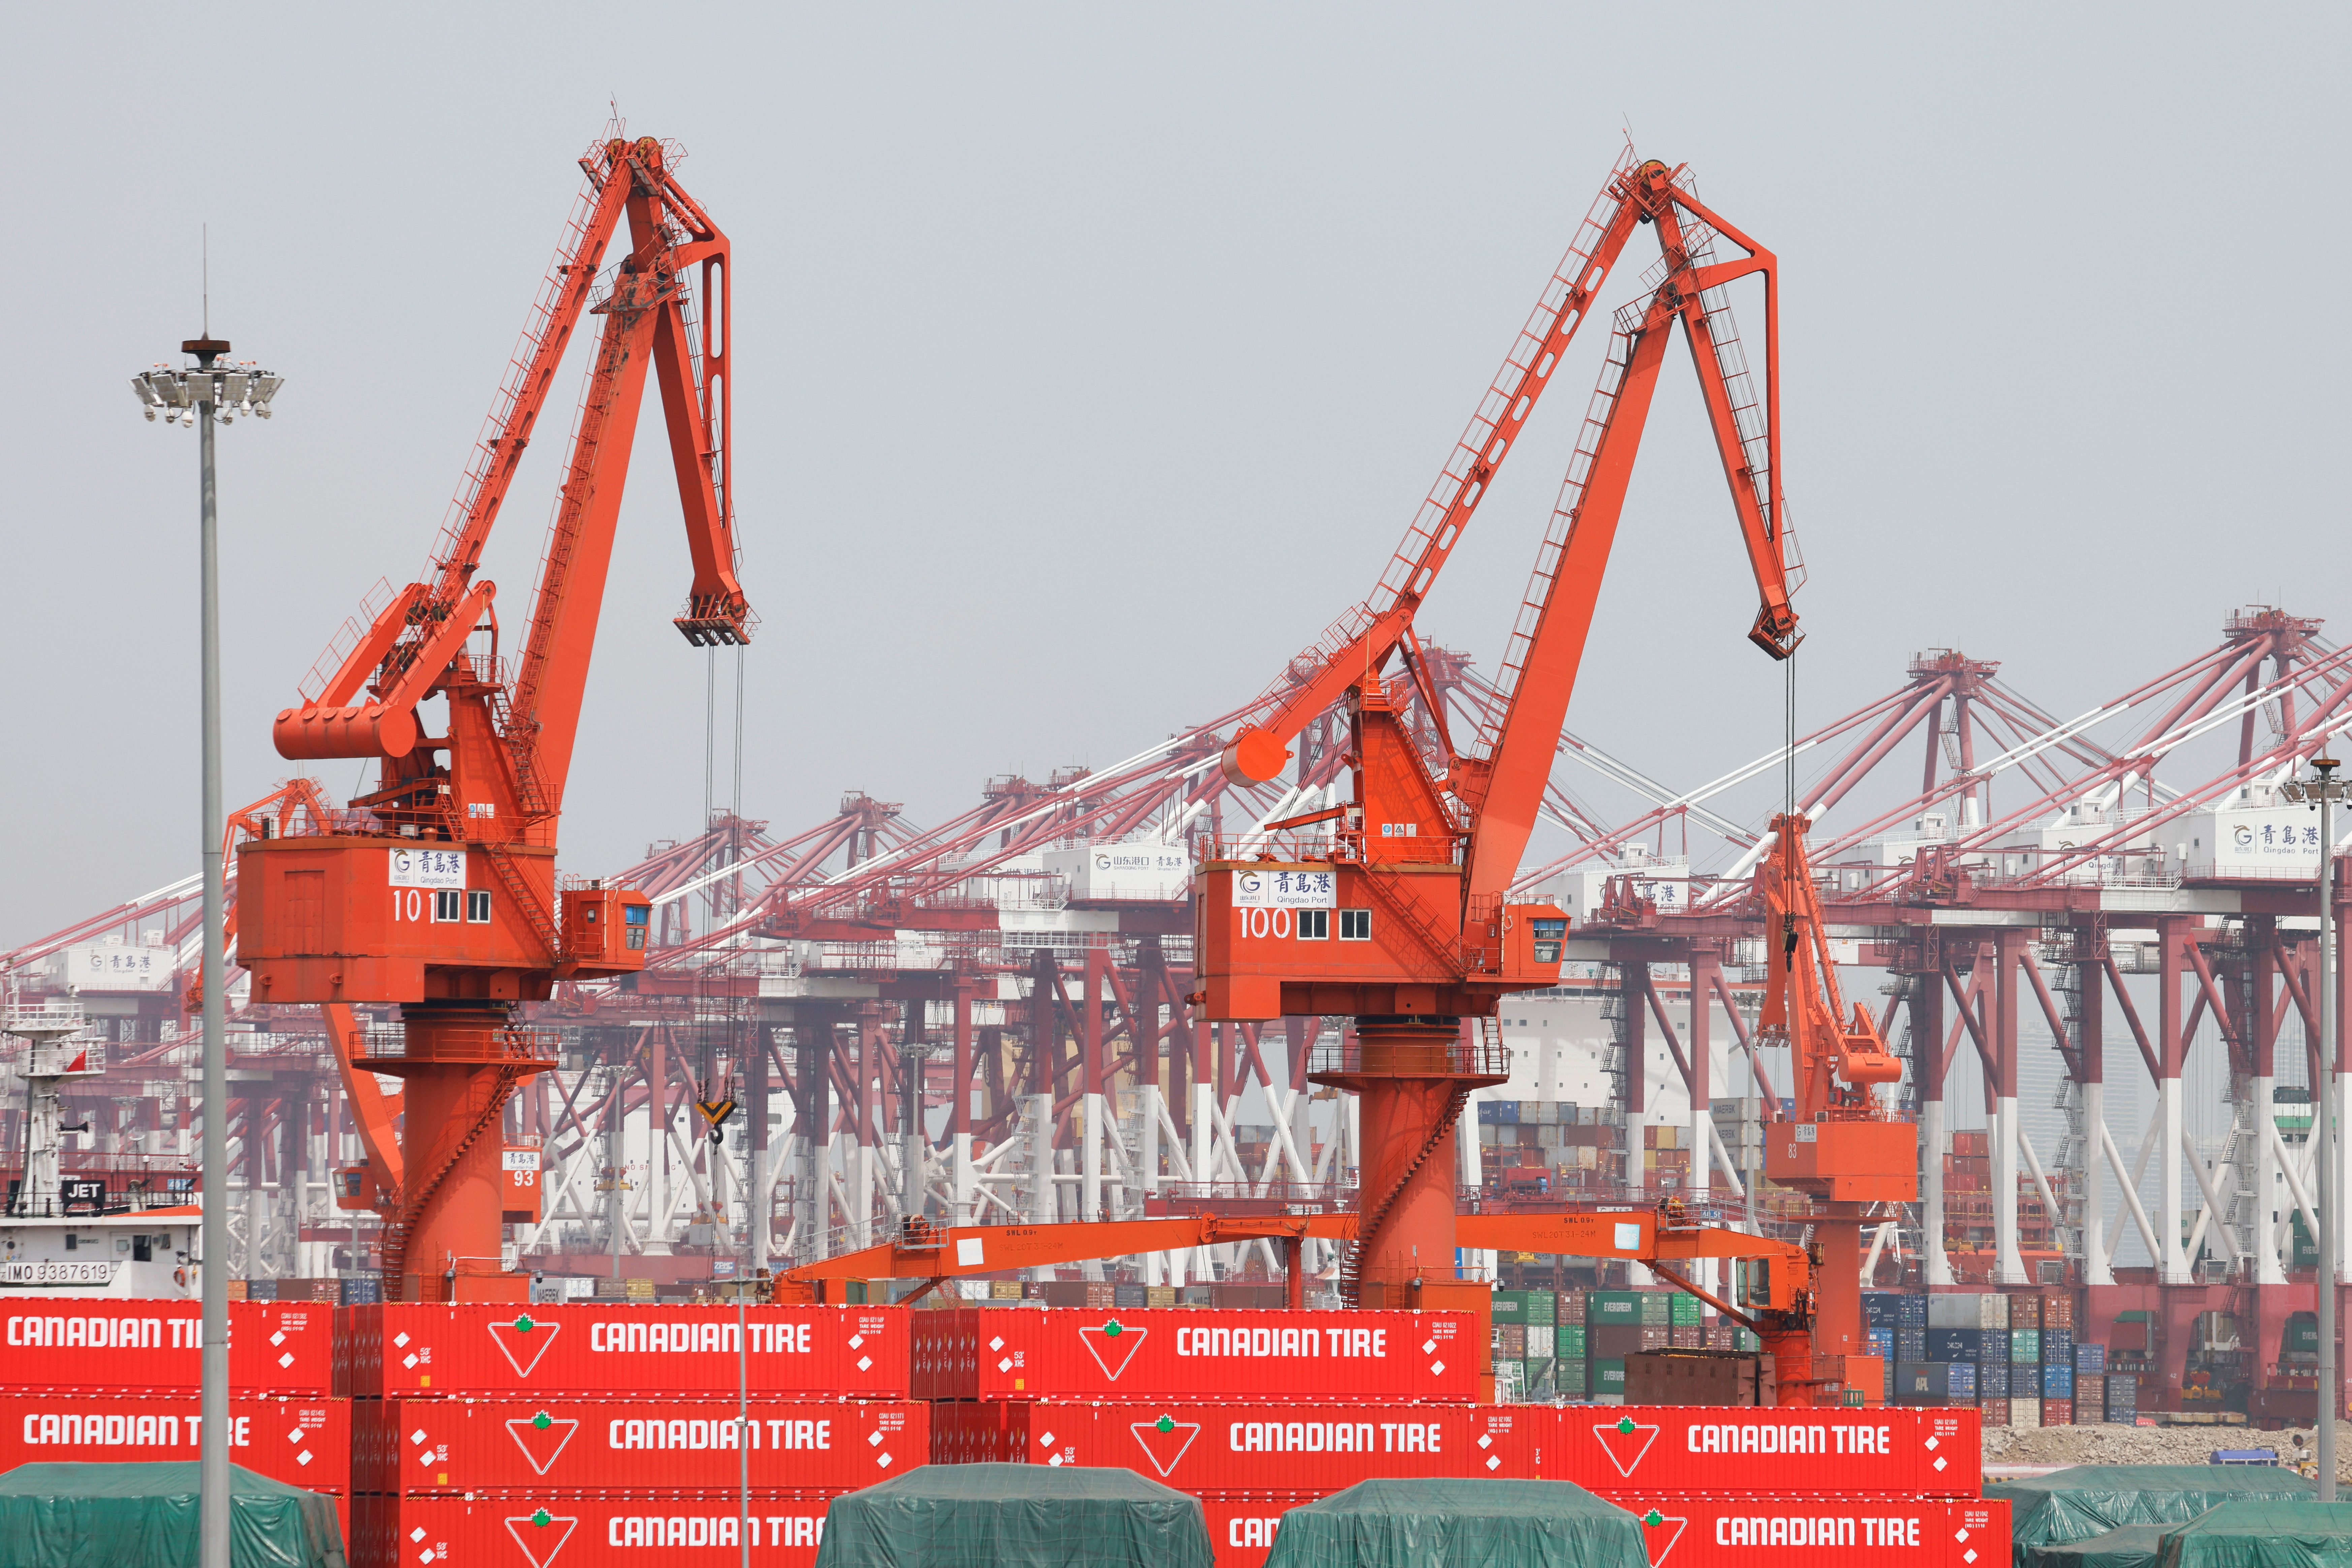 Canadian Tire containers are seen near cranes at Qingdao port in Shandong province, China, following an oil spill in the Yellow Sea caused by a collision between tanker A Symphony and bulk vessel Sea Justice off the port, April 28, 2021. REUTERS/Carlos Garcia Rawlins